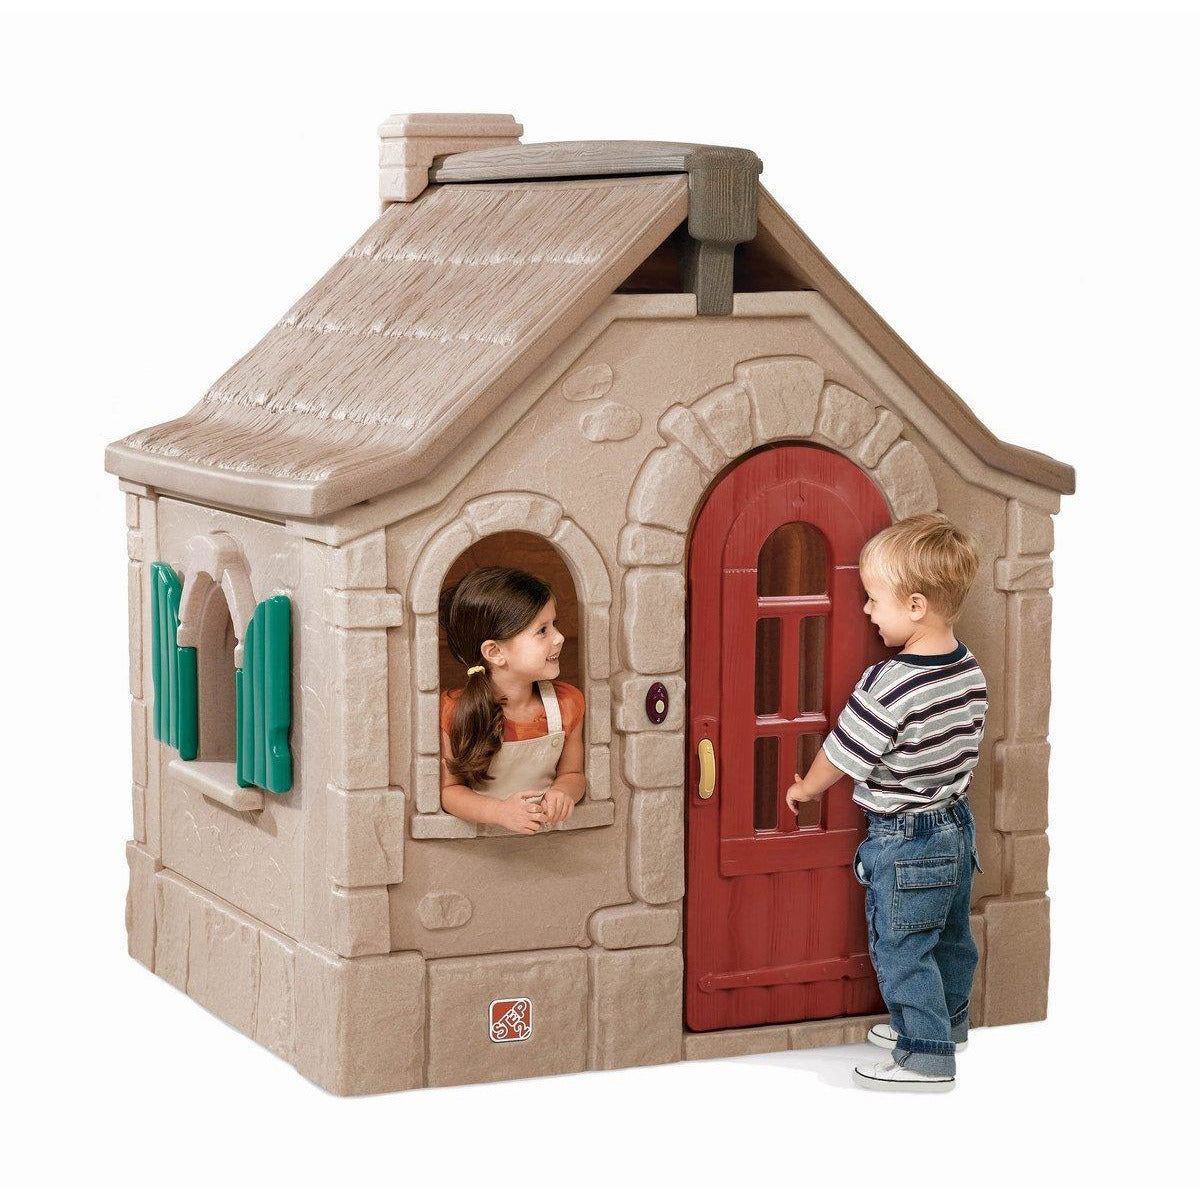 Snug & Cushy Cottage Toy Playhouse - rafplay